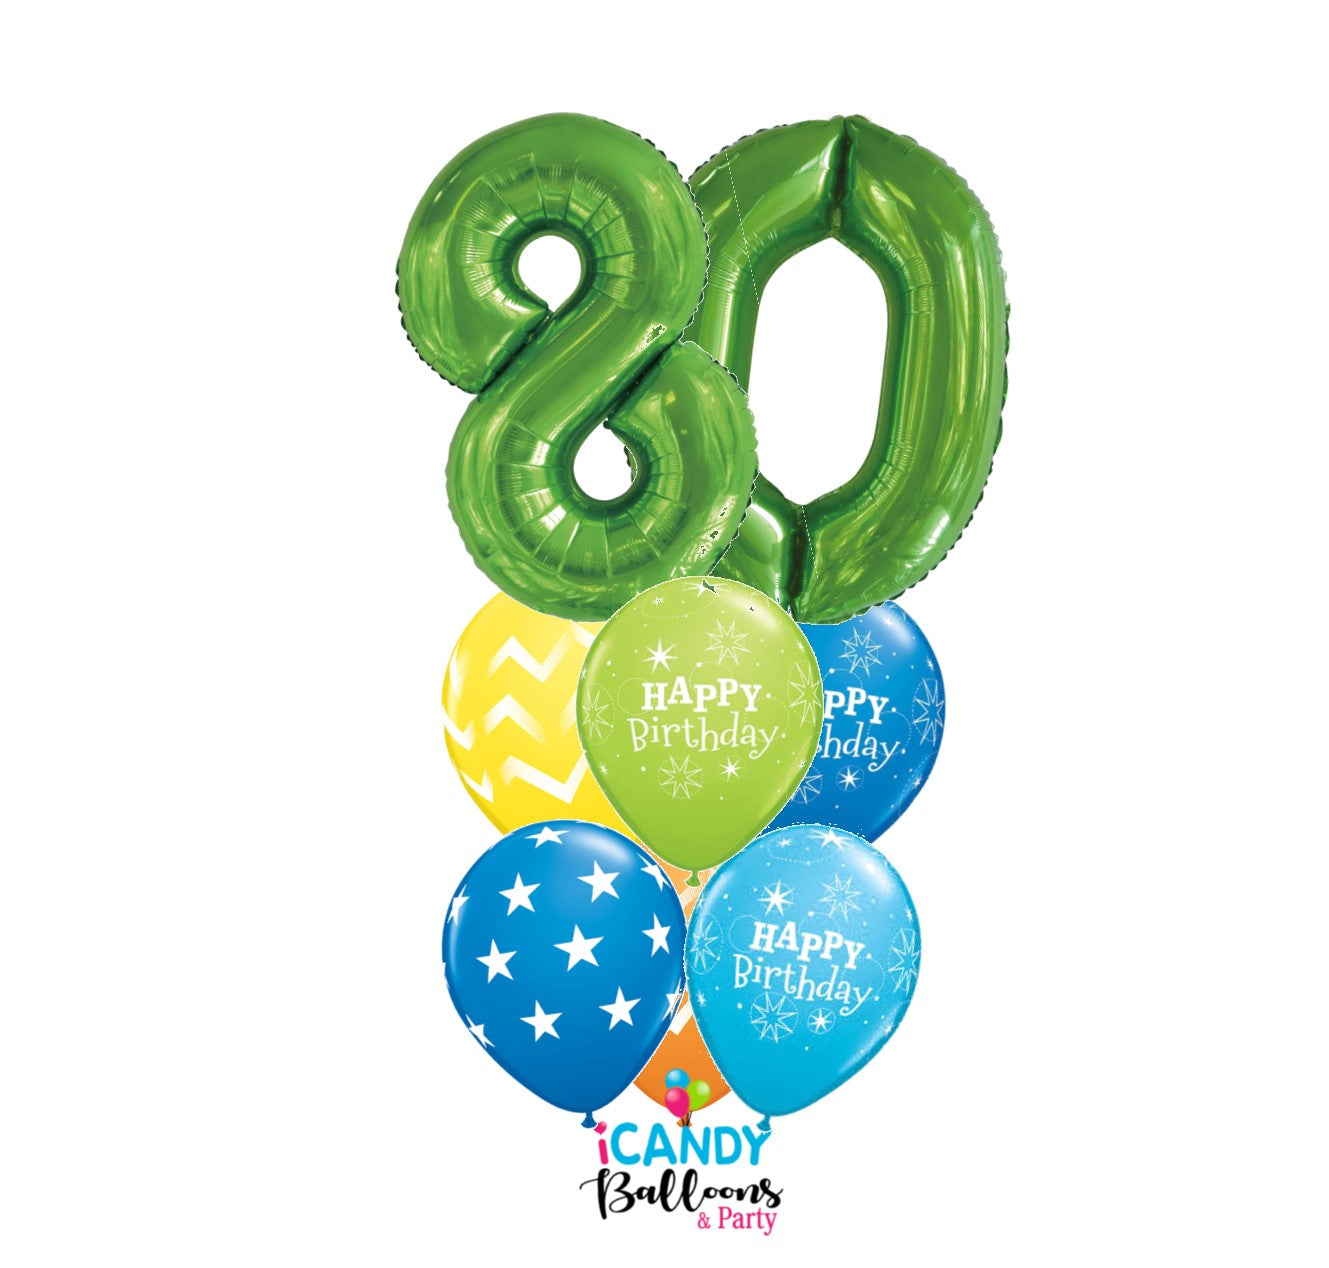 80th Birthday Balloons & Party Supplies